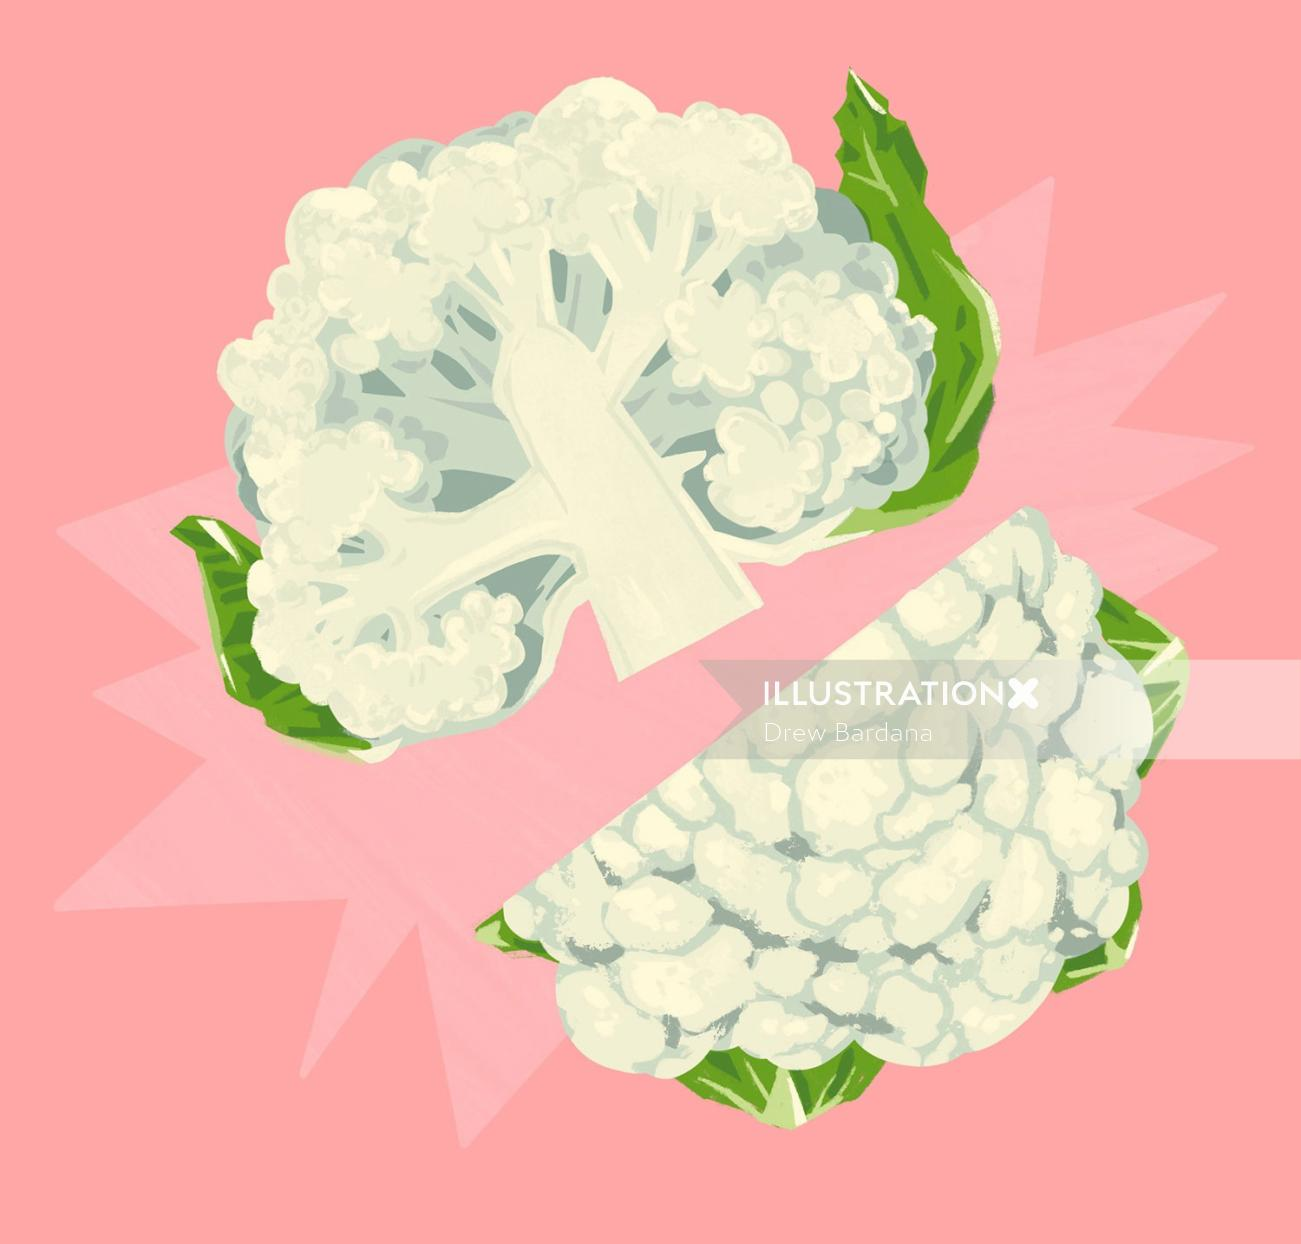 Food illustration of cauliflower